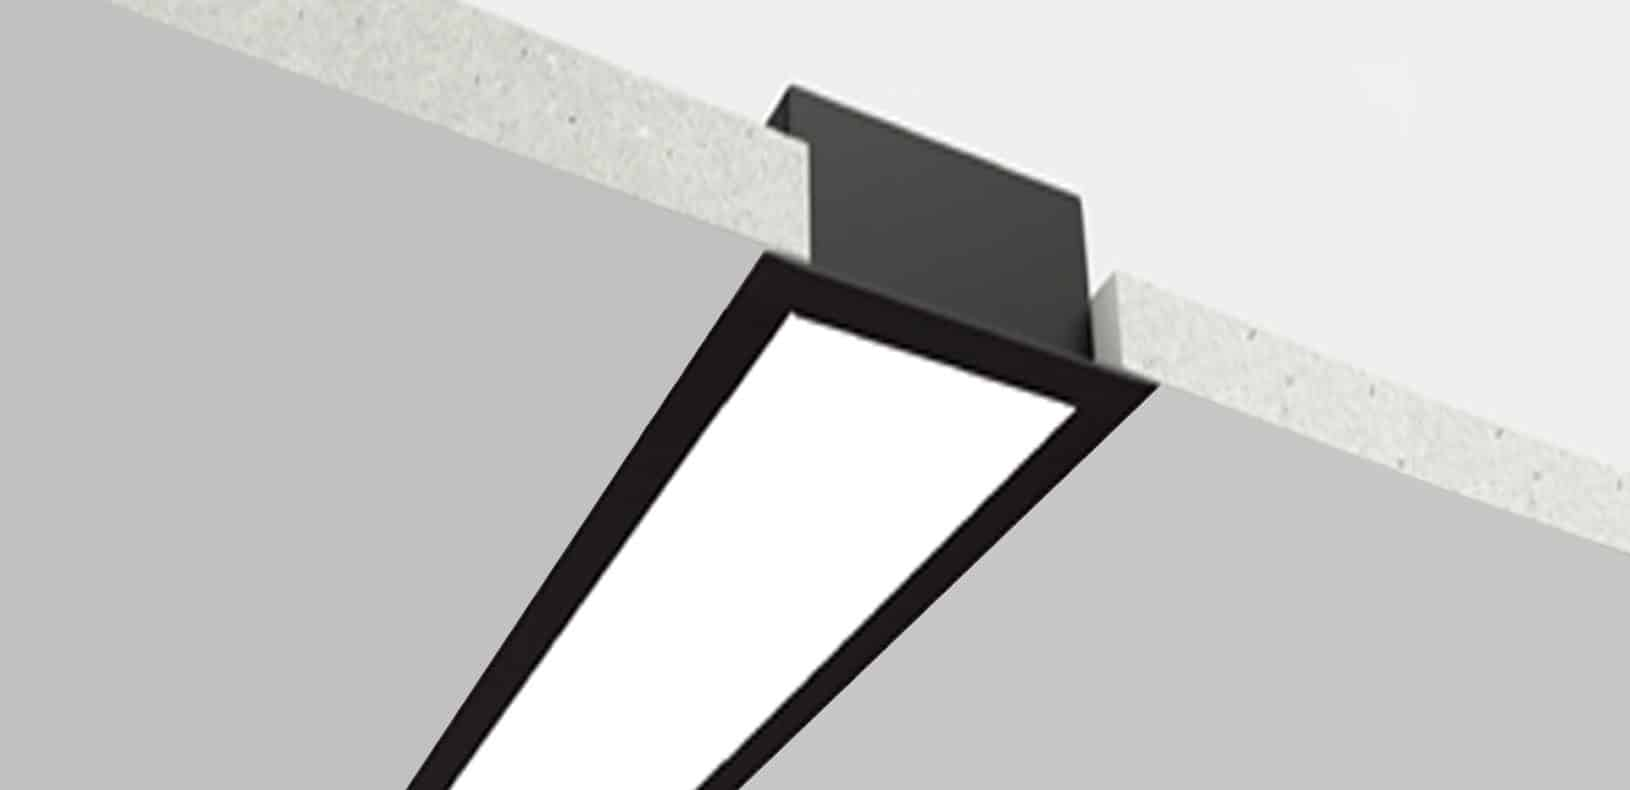 LED Aluminium Profile - Smart Linear Lighting System - LS17032S